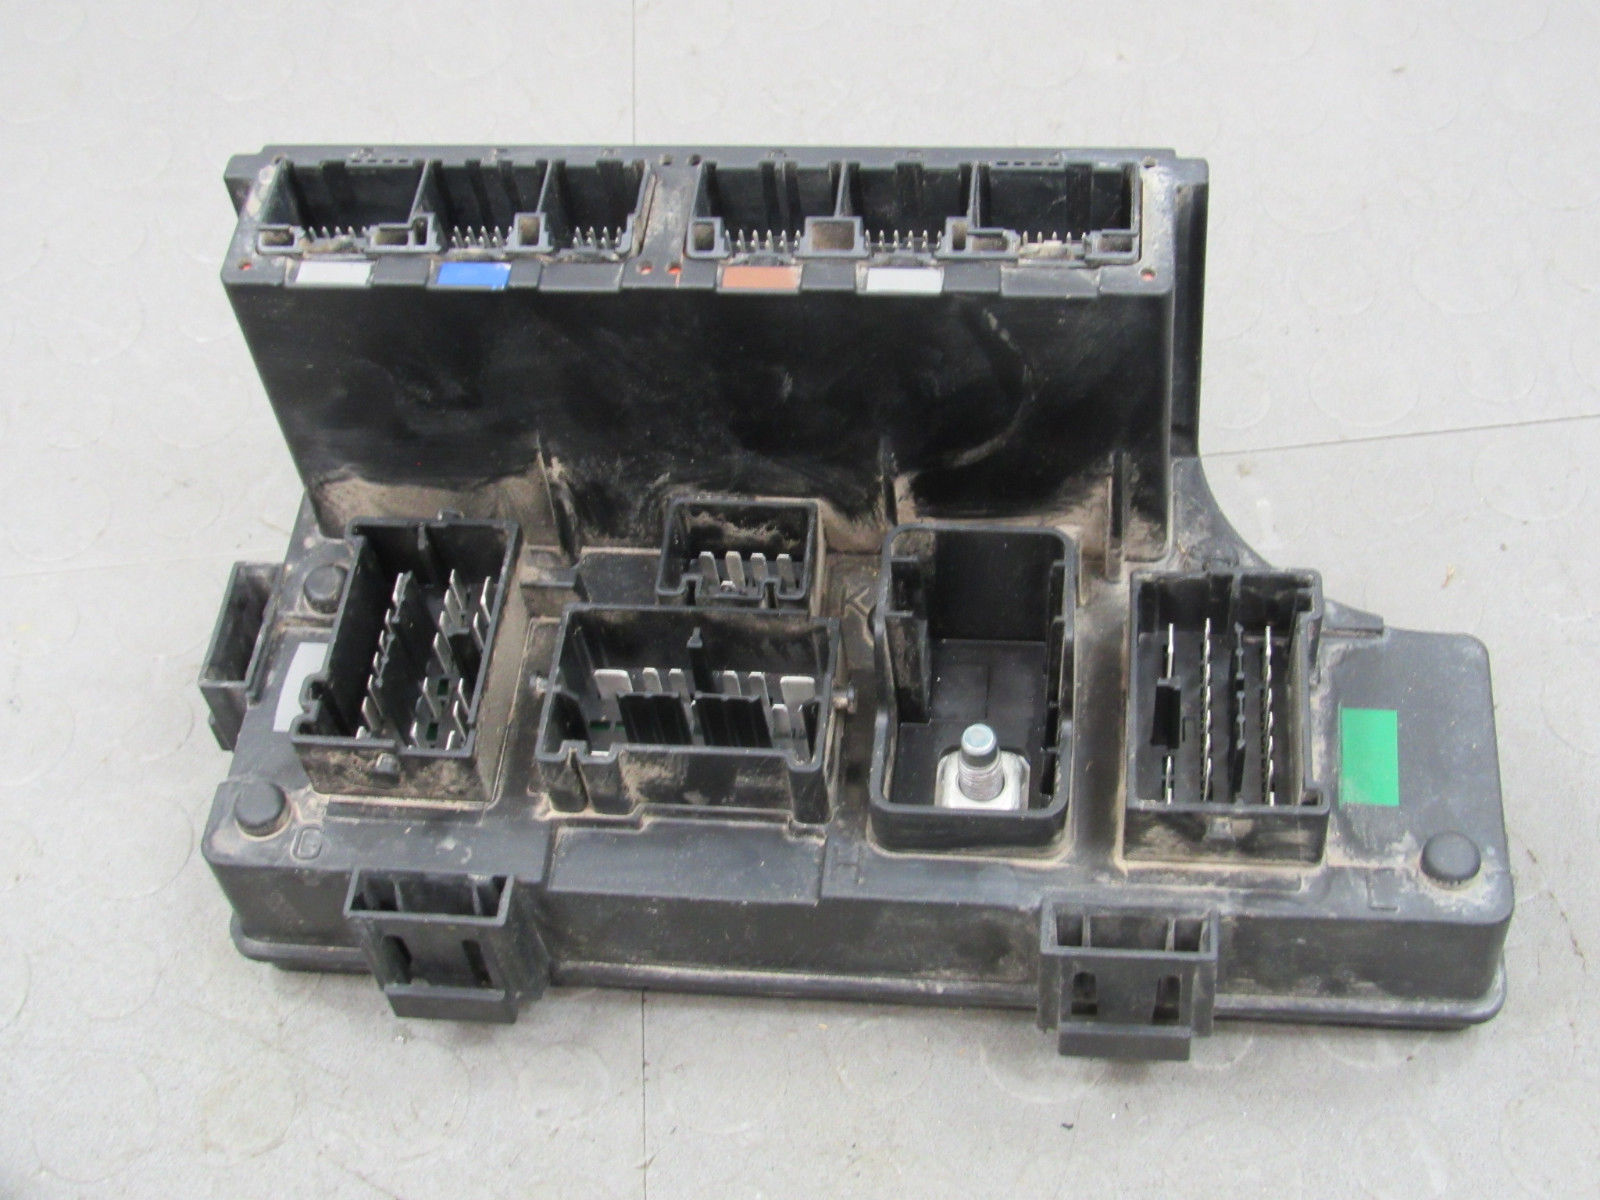 08 Patriot Fuse Box Trusted Wiring Diagrams 2010 Jeep Commander 09 Caliber Compass Tipm Integrated Power Module